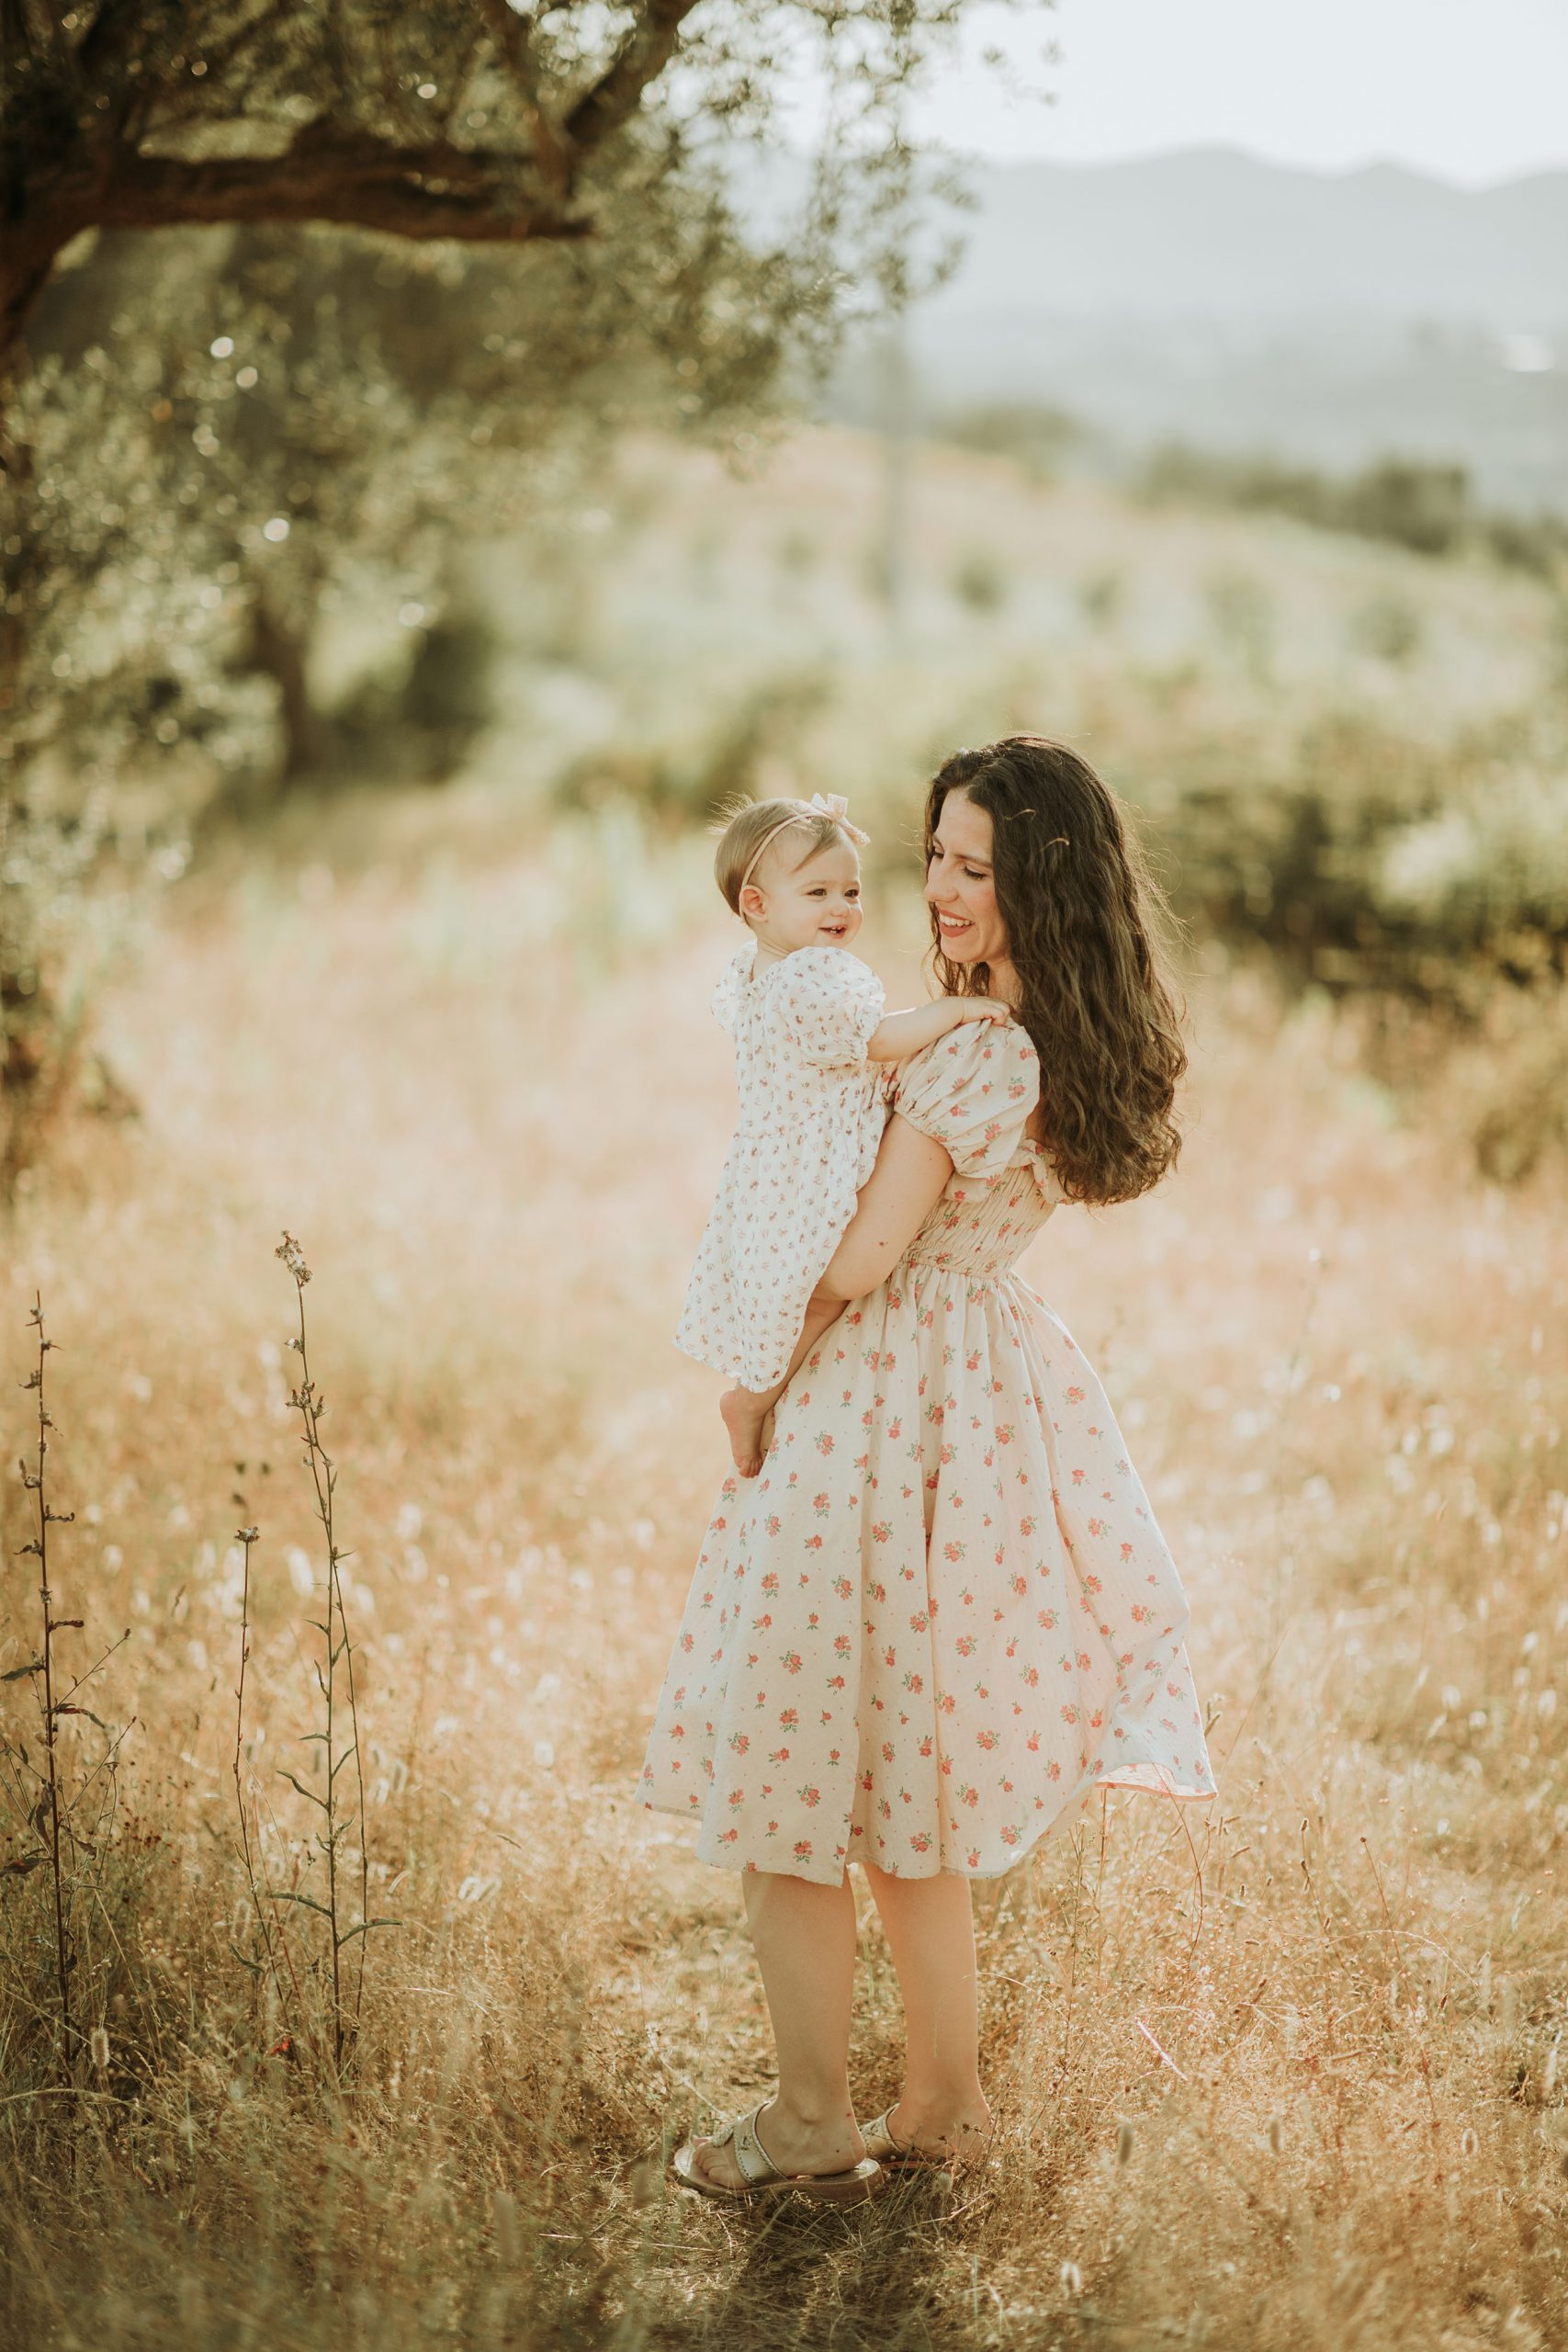 Mother and daughter outdoor photoshoot